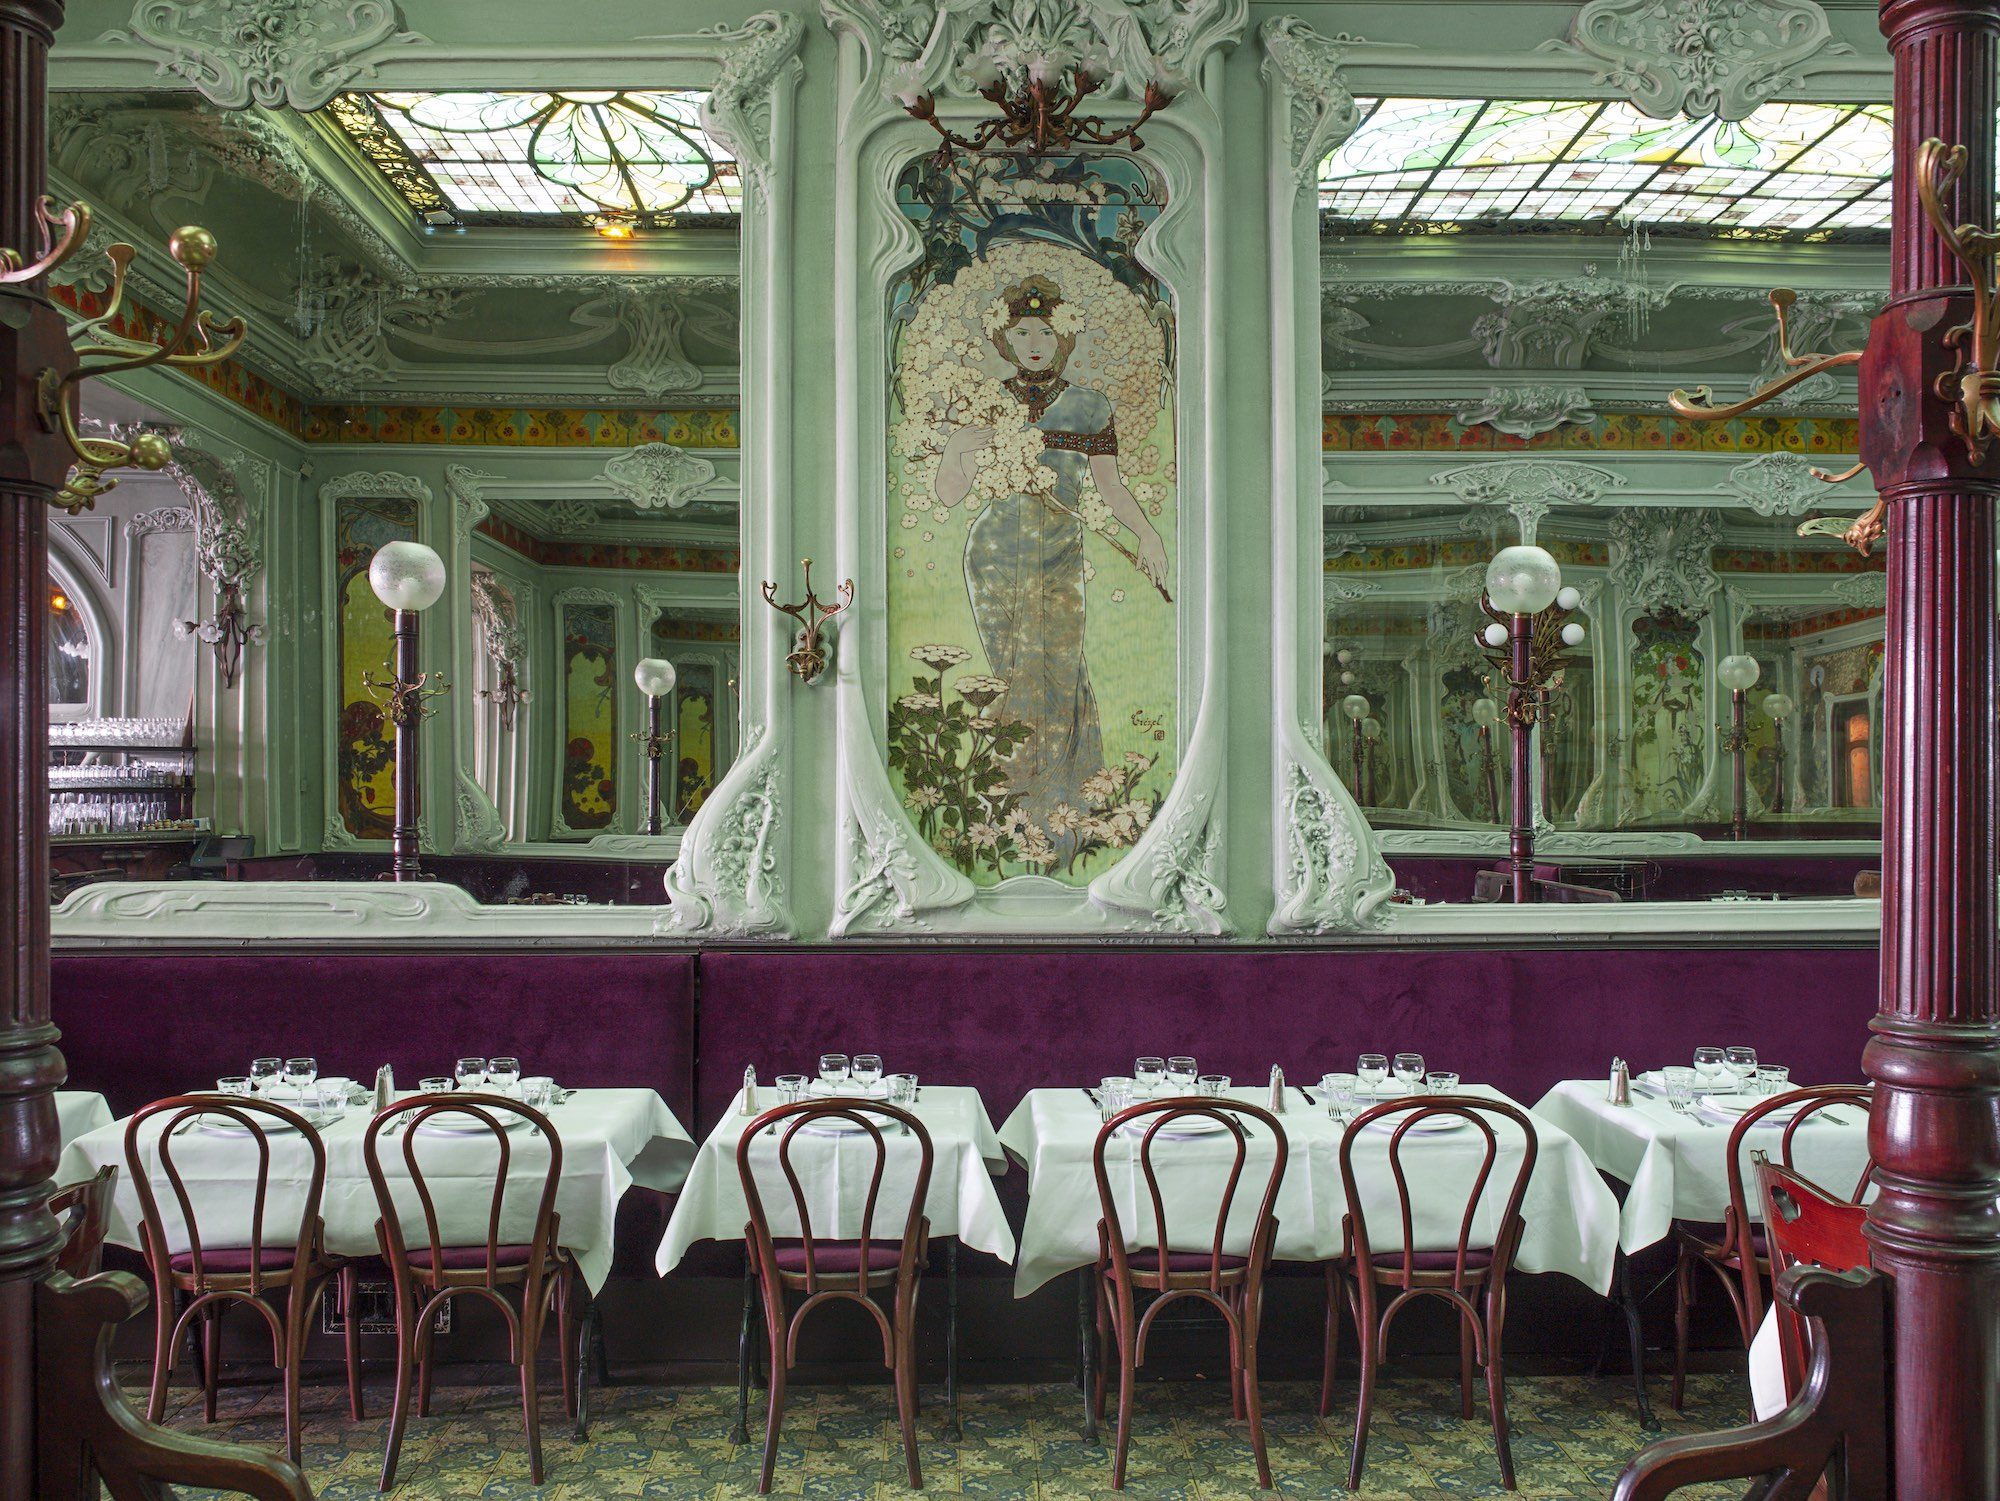 Interior shot of the wonderful Art Nouveau interiors of Bouillon Julien restaurant in Paris